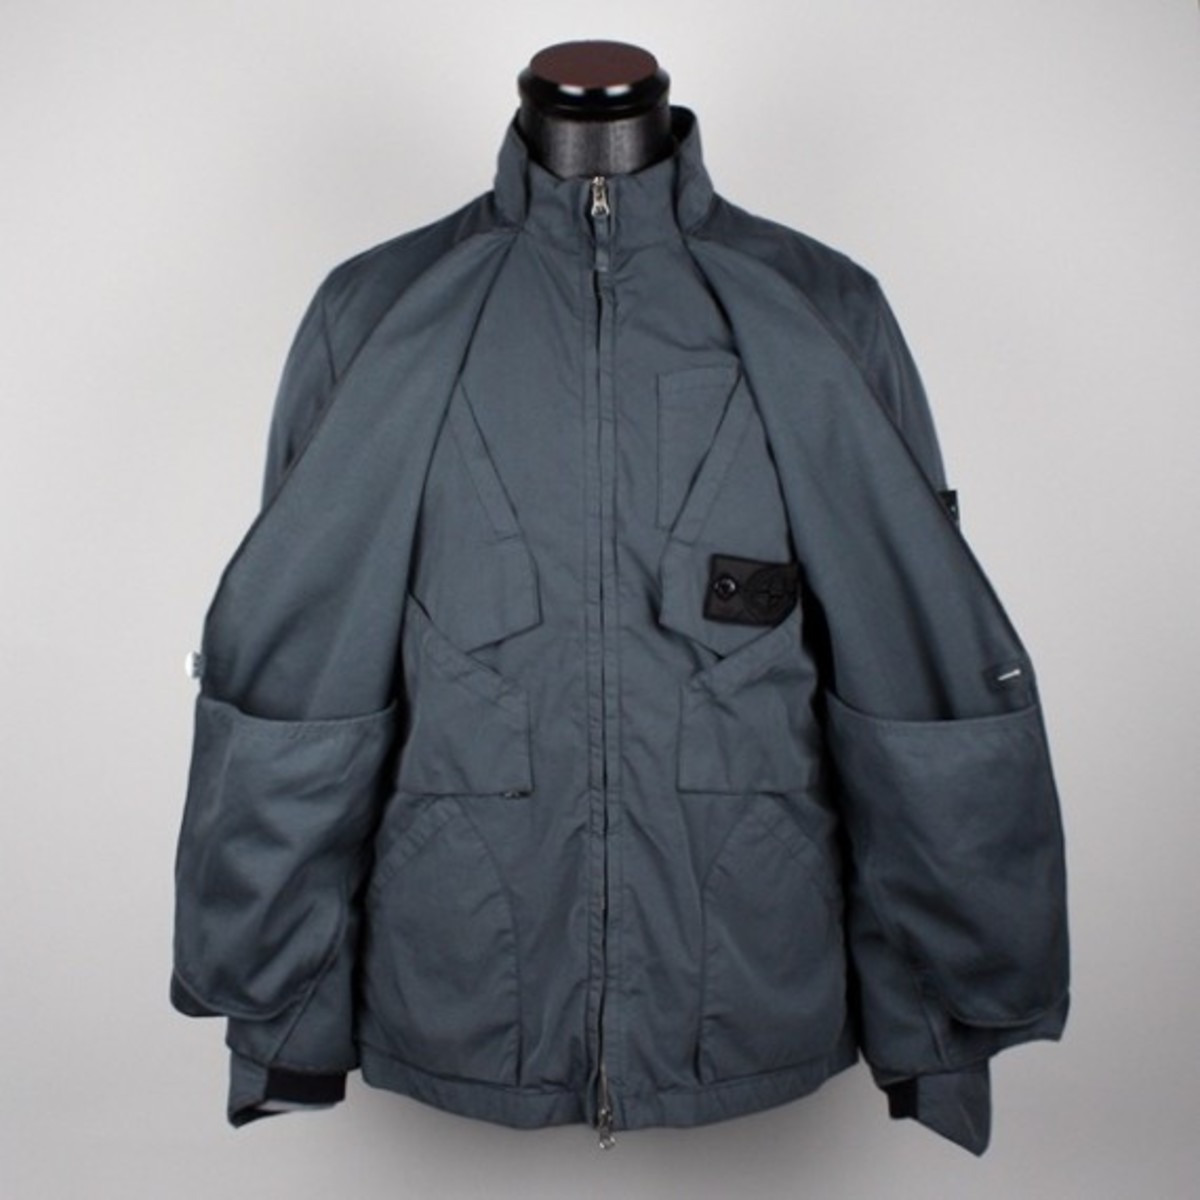 stone-island-shadow-project-spring-summer-2012-collection-11